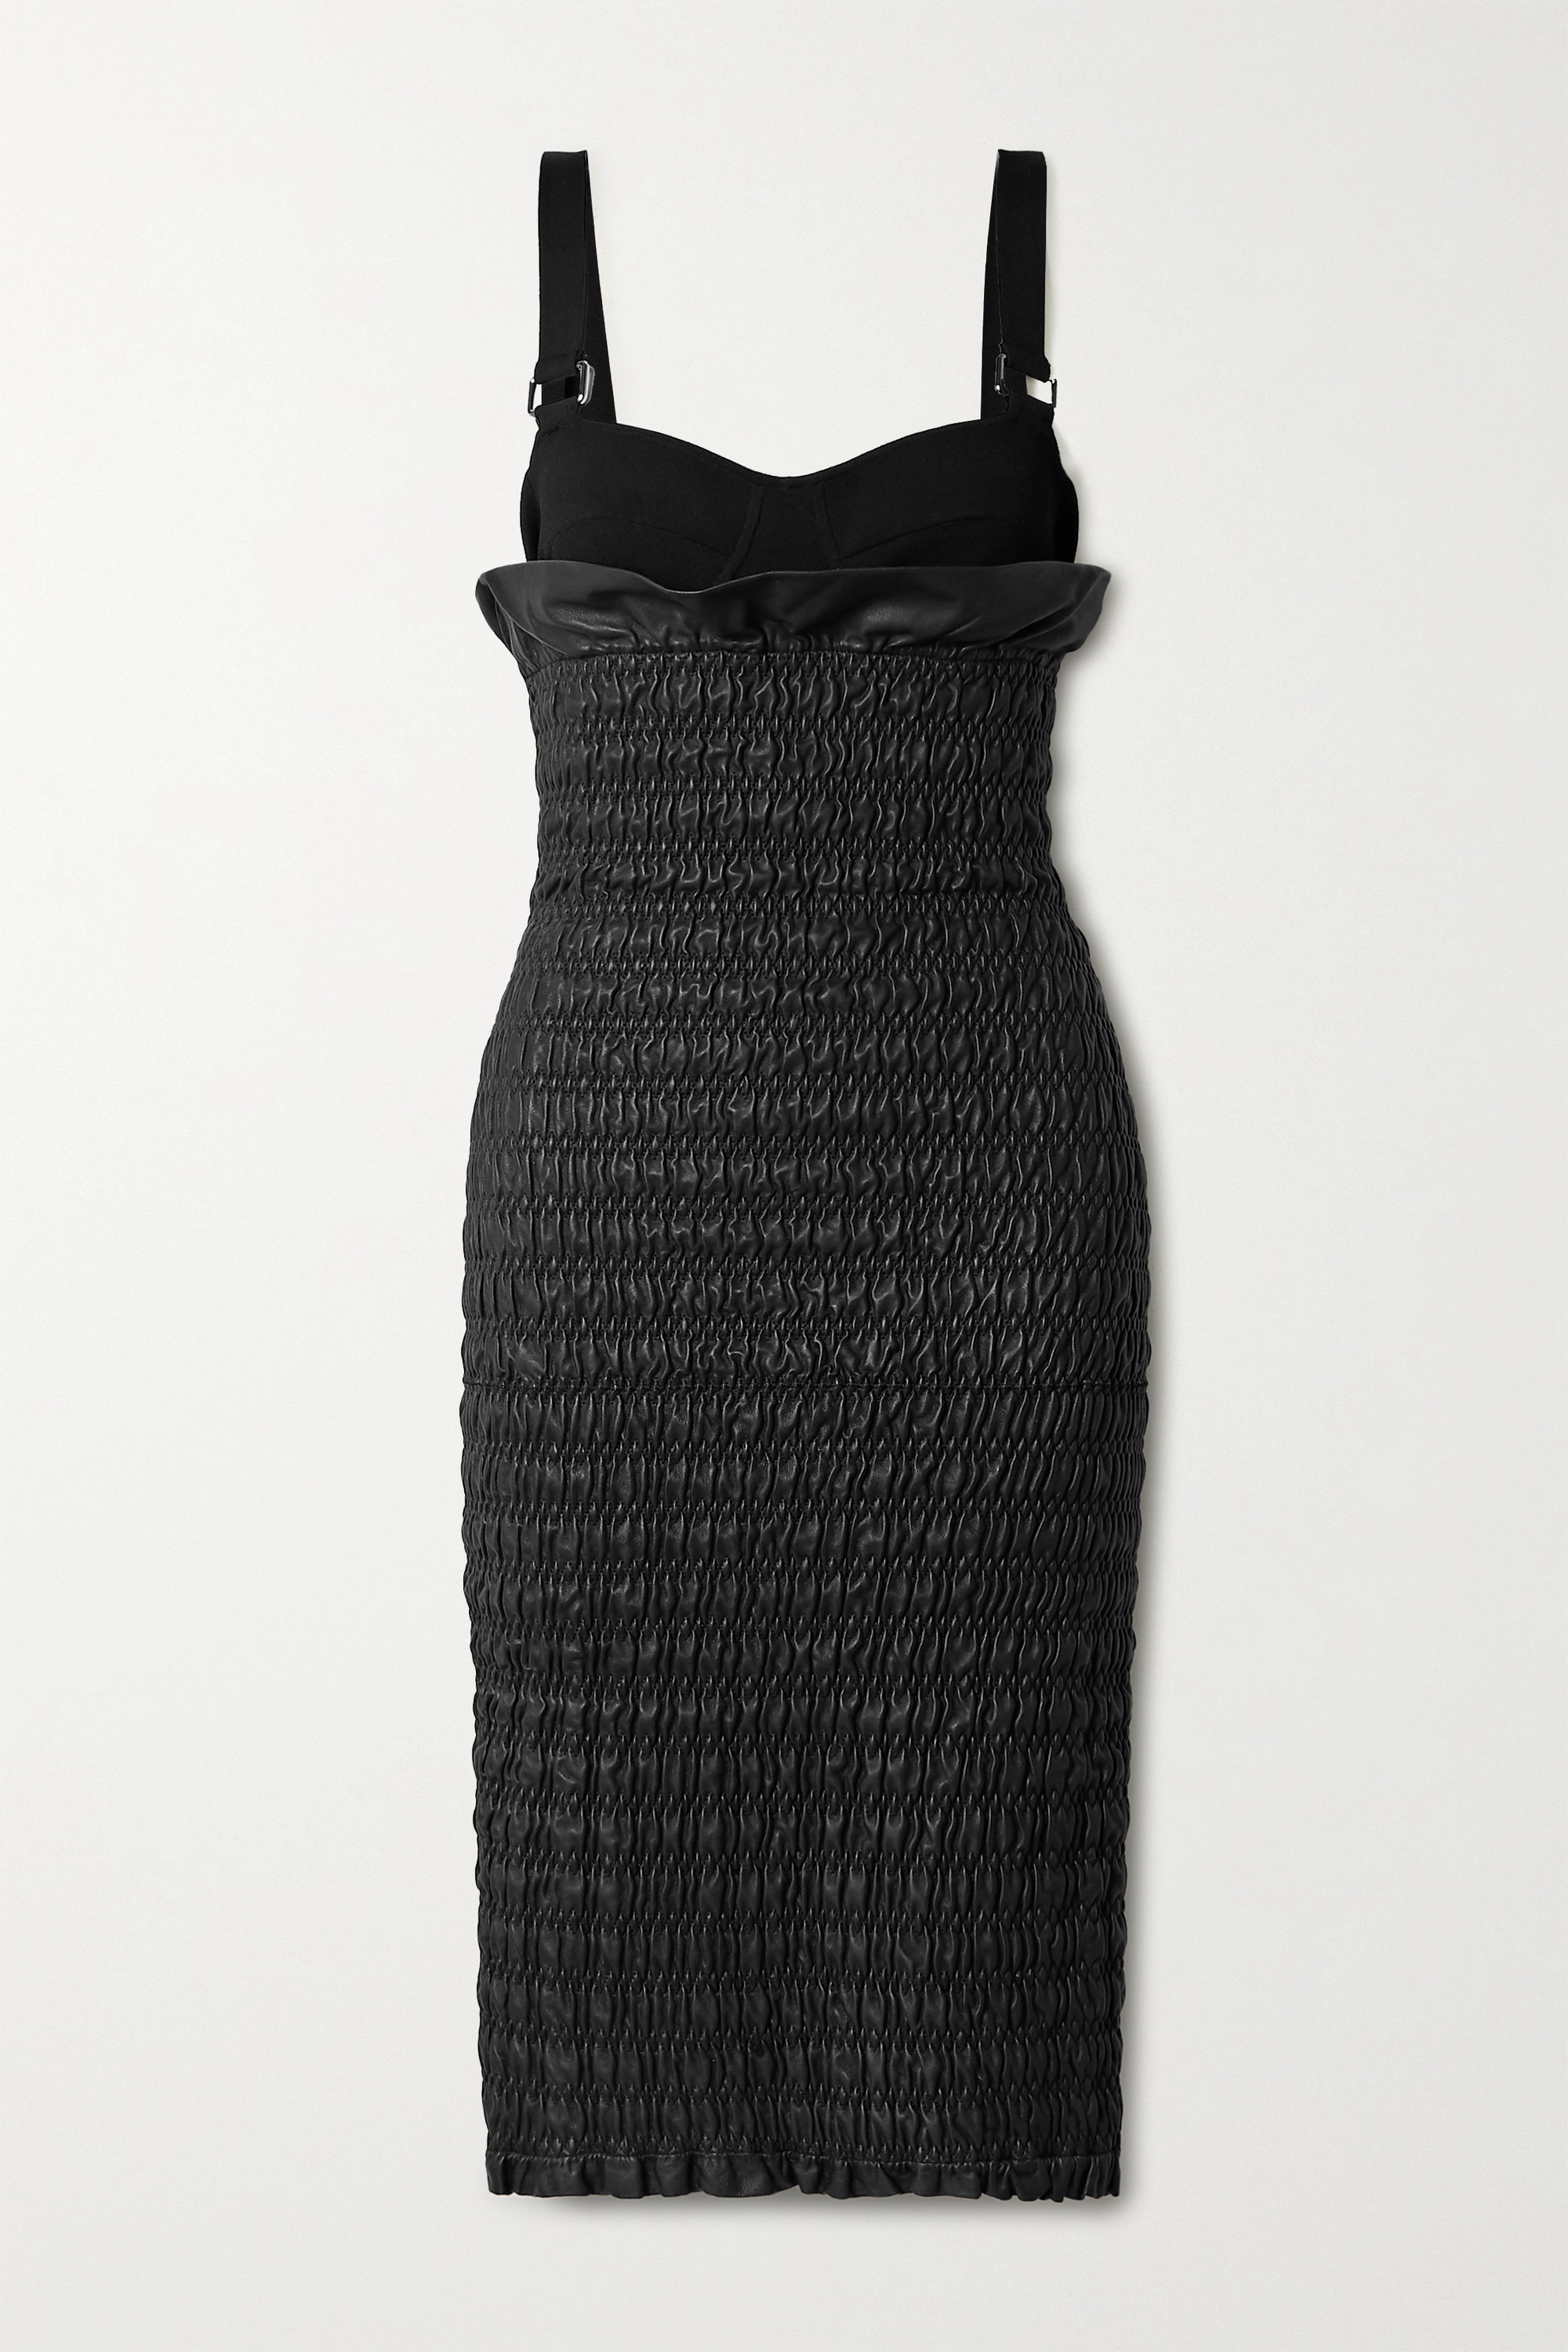 Proenza Schouler Layered smocked leather and stretch-knit dress